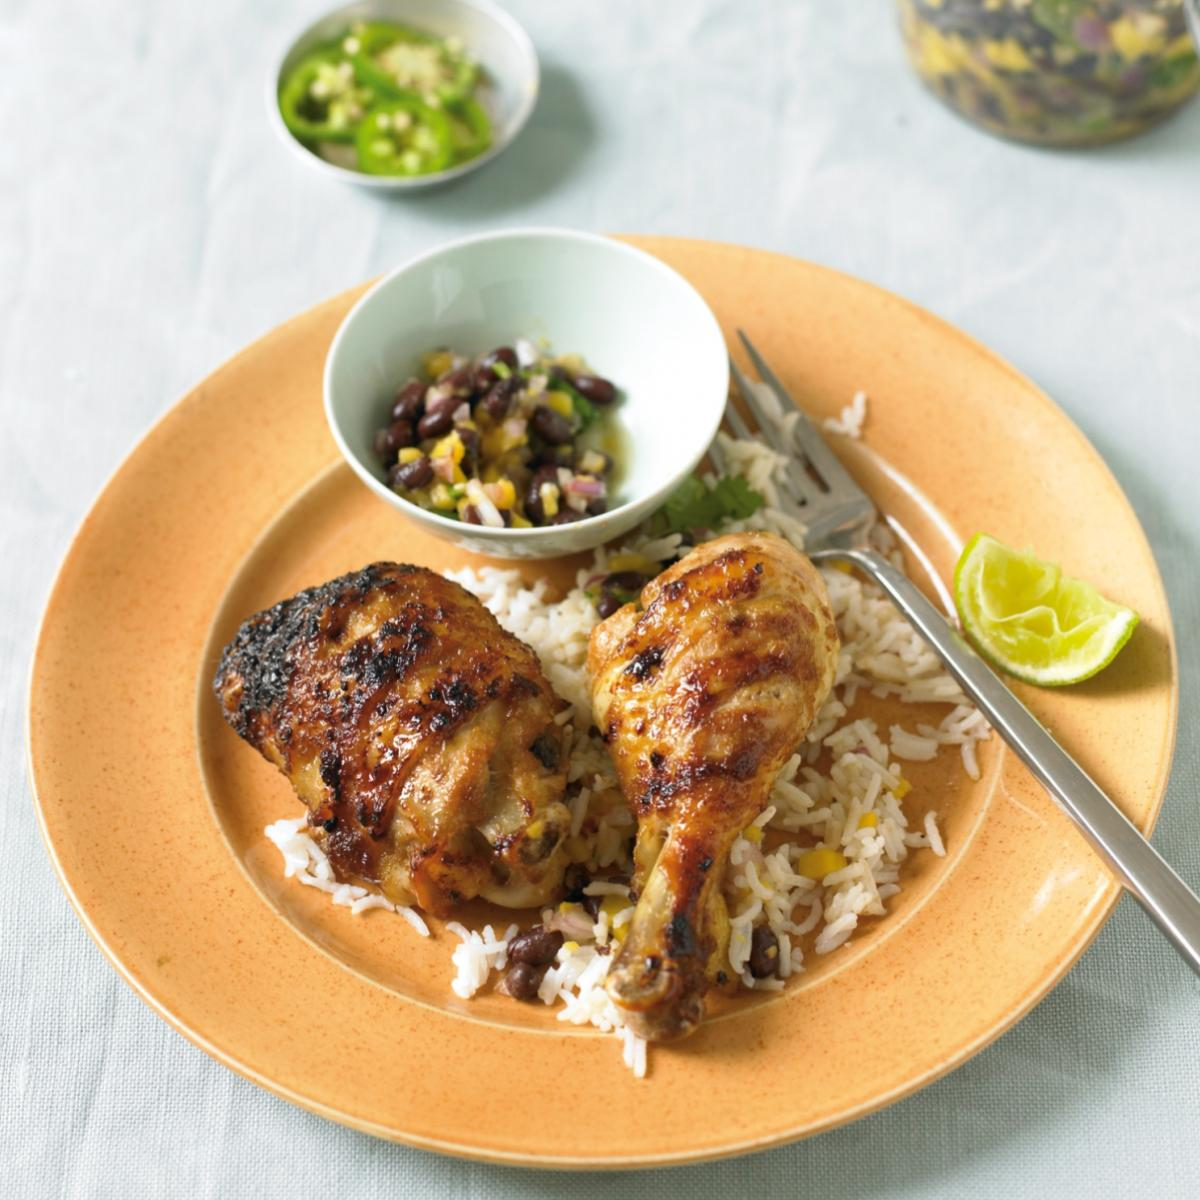 A picture of Delia's Caribbean Chicken with Salsa recipe